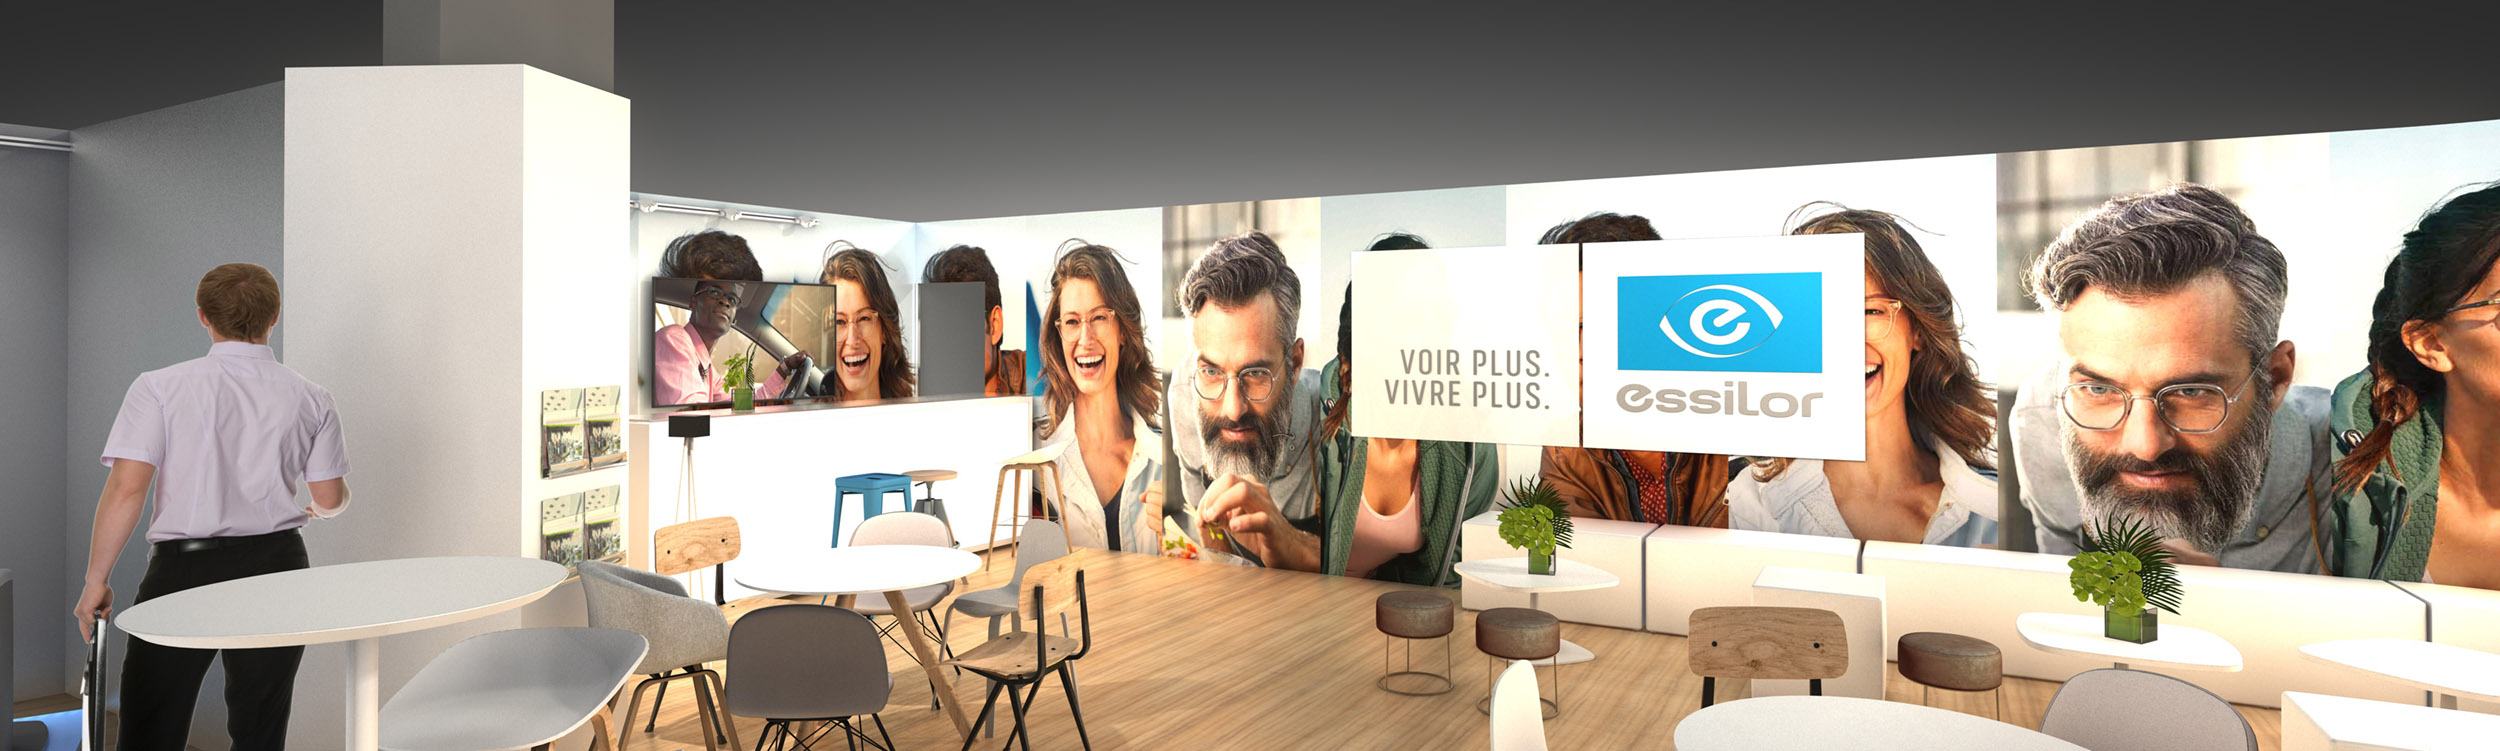 stand booth essilor sfo 13.jpg